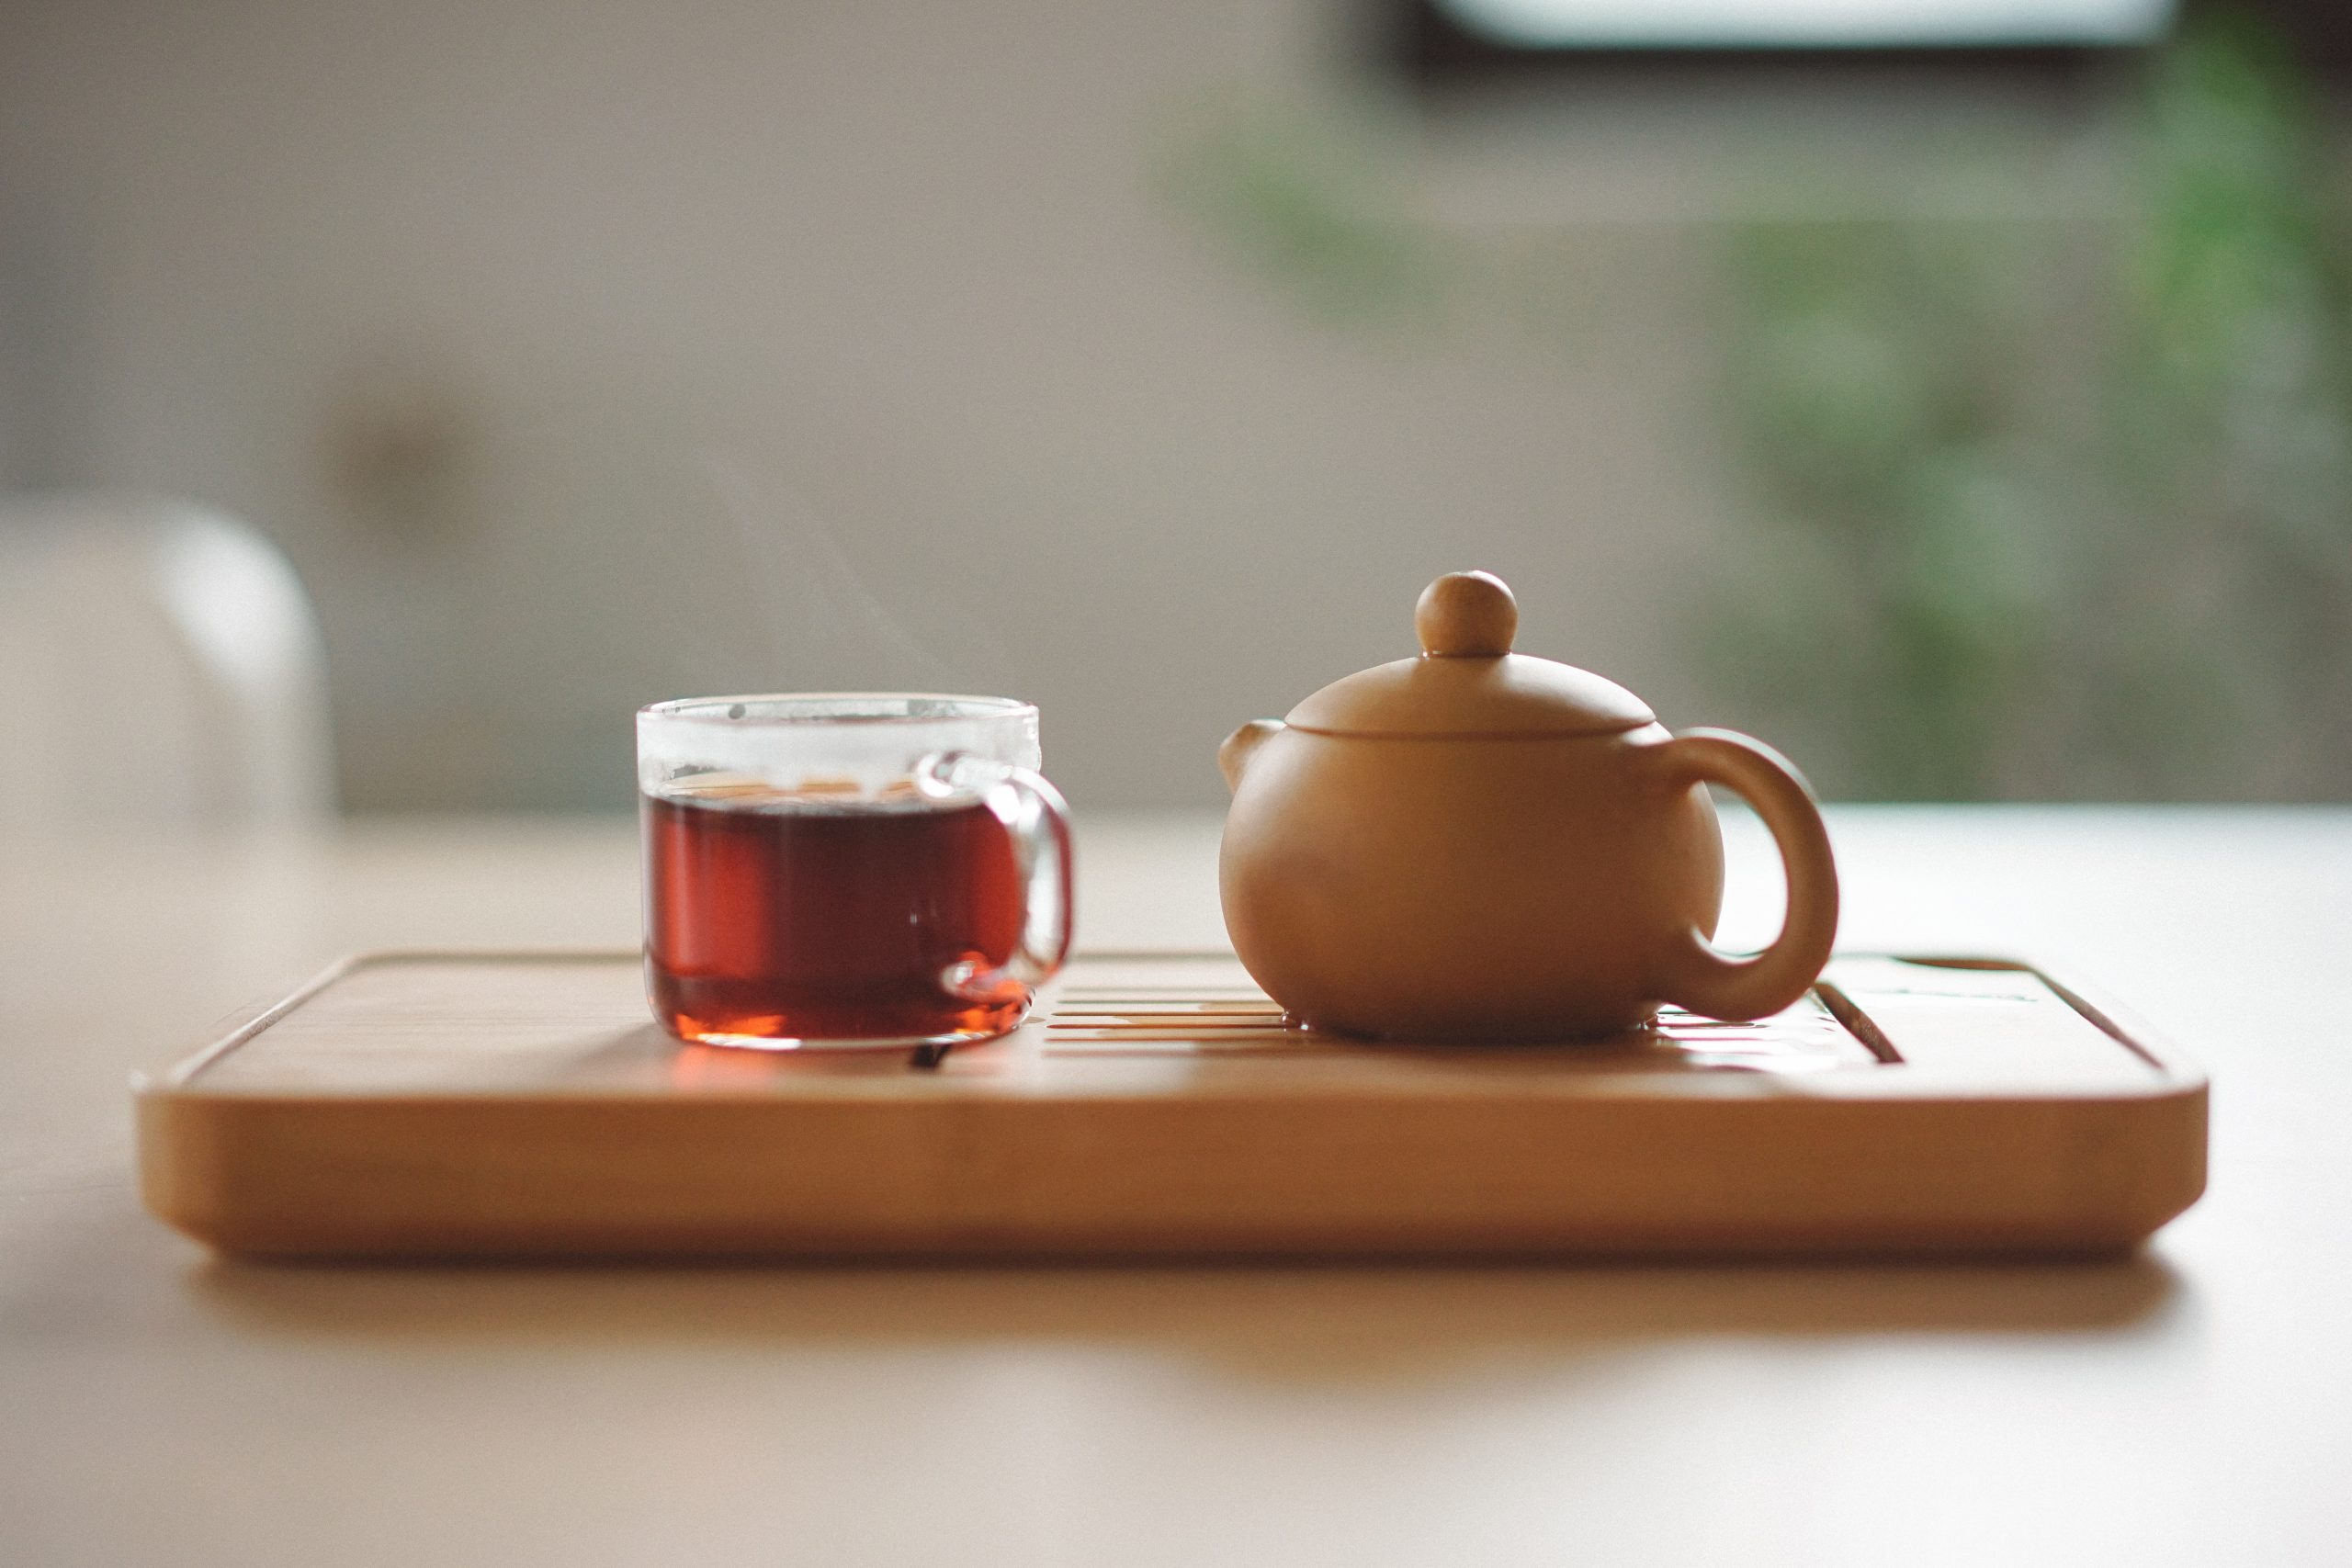 A cup of tea and a kettle placed side by side on a wooden tray, which is placed on a table.